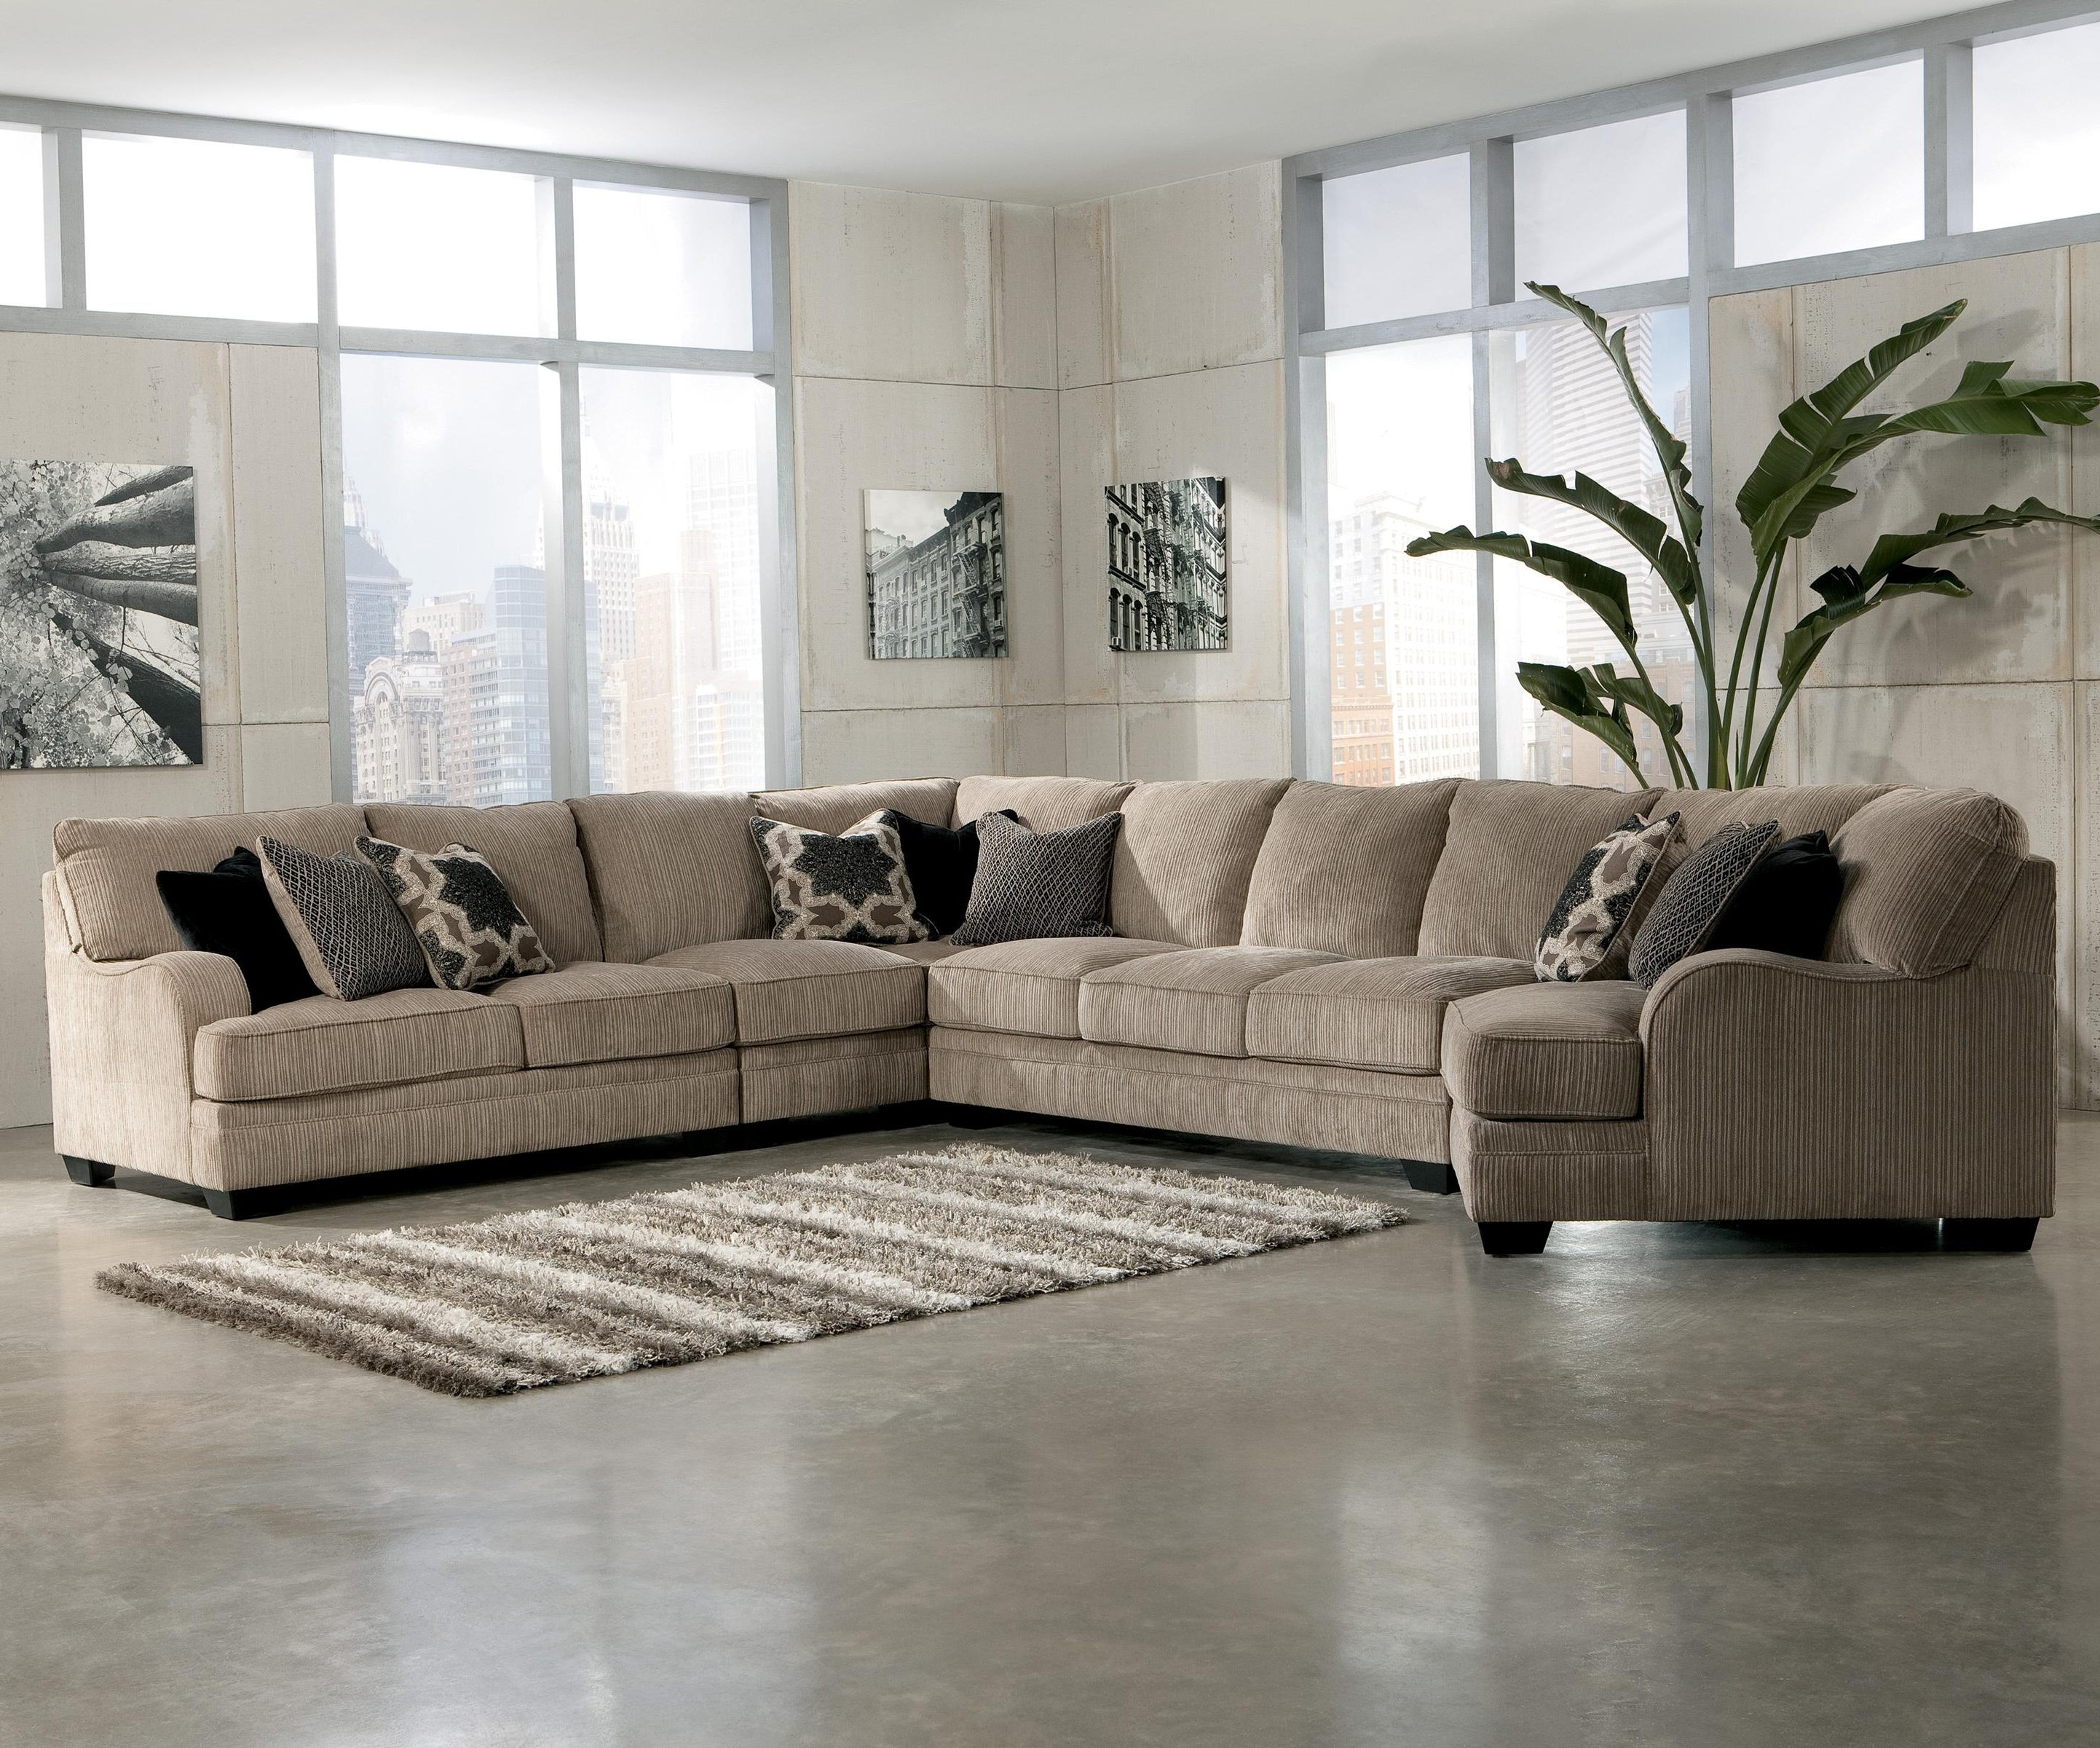 Blaine 4 Piece Sectionals Intended For Fashionable Signature Designashley Katisha – Platinum 5 Piece Sectional Sofa (View 8 of 20)